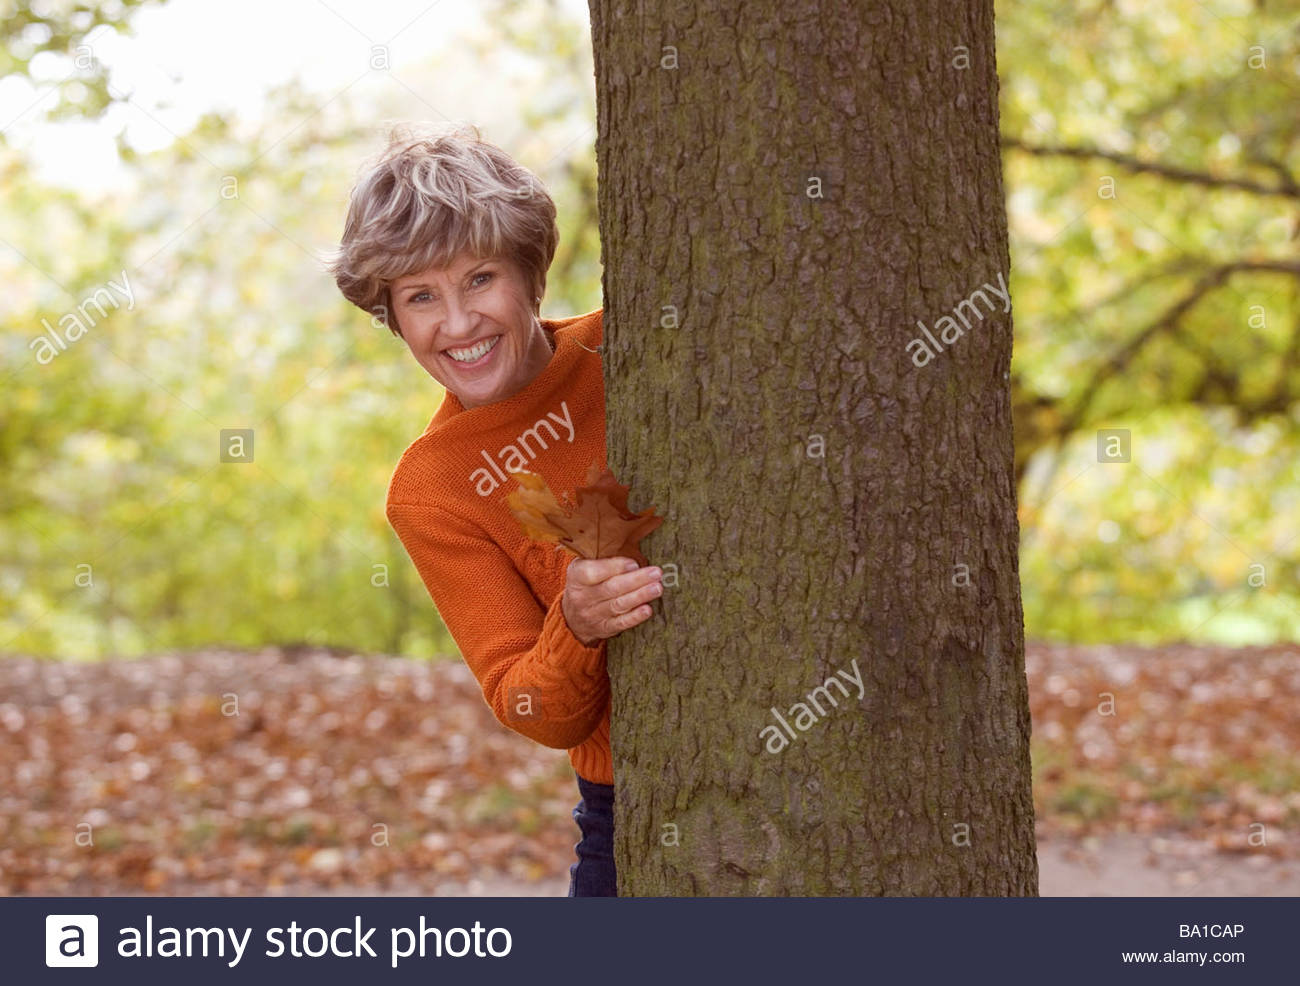 A senior woman standing next to a tree smiling - Stock Image